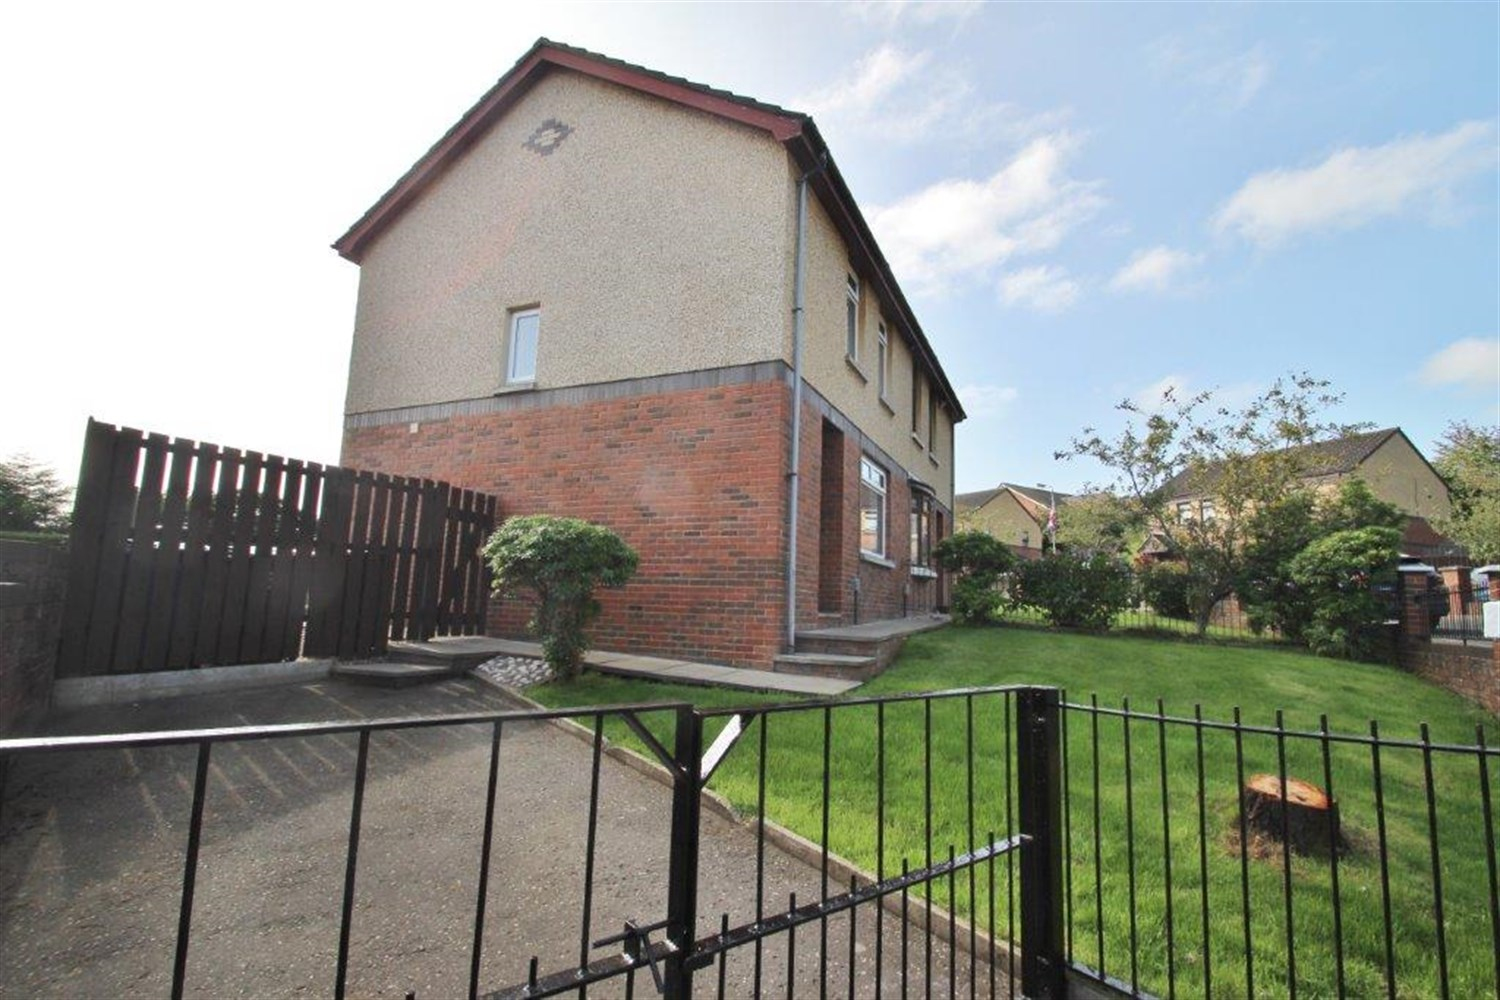 55 Downview Gardens, Donegall Park Avenue, Belfast, BT15 4GH